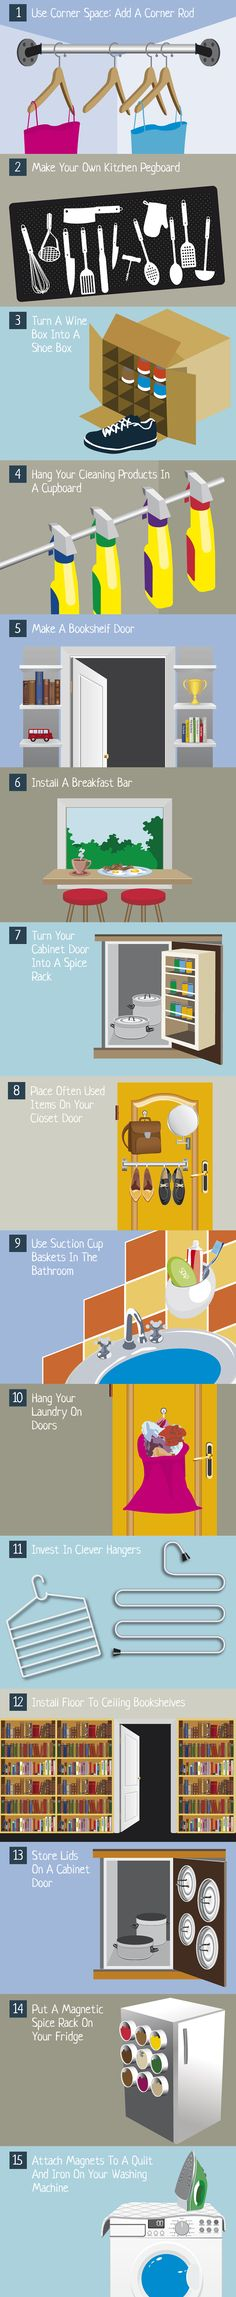 15 Small Space Life Hacks